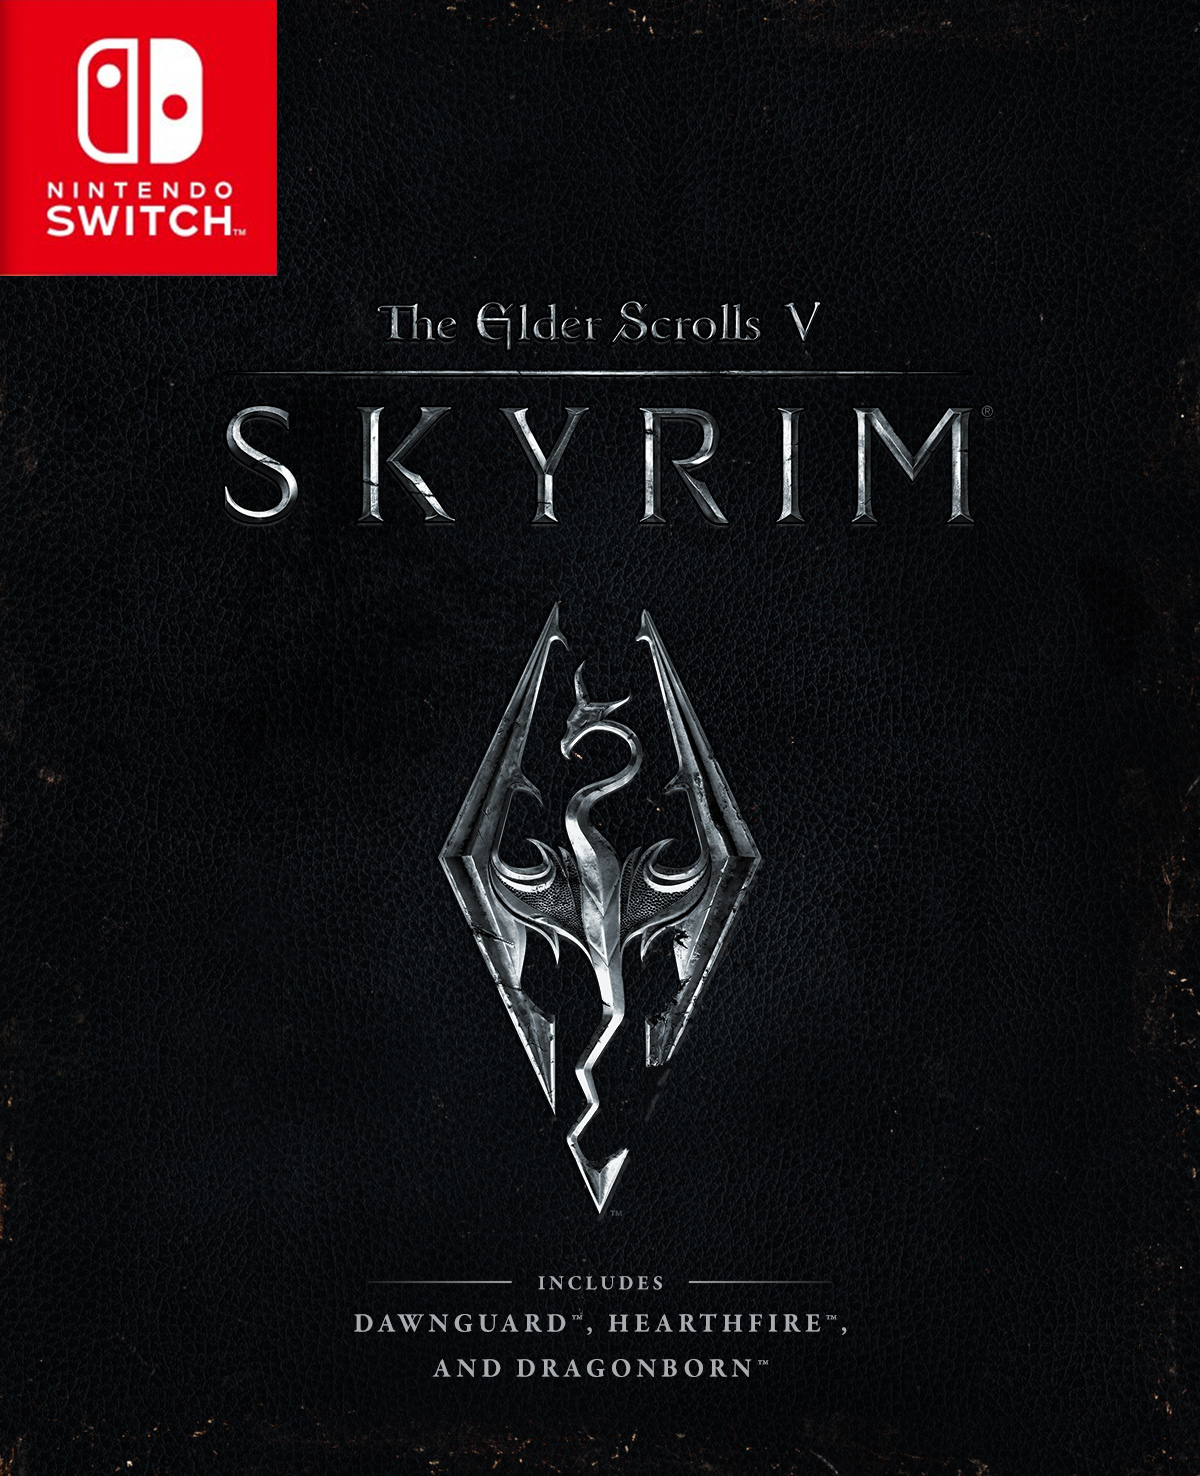 https://images.contentful.com/rporu91m20dc/1vwcfgobVySUO6awIMsoei/c3986ed4bcb7bef105666a5f970ef27c/TES-Skyrim-Switch_boxart-template-1200x1476.jpg